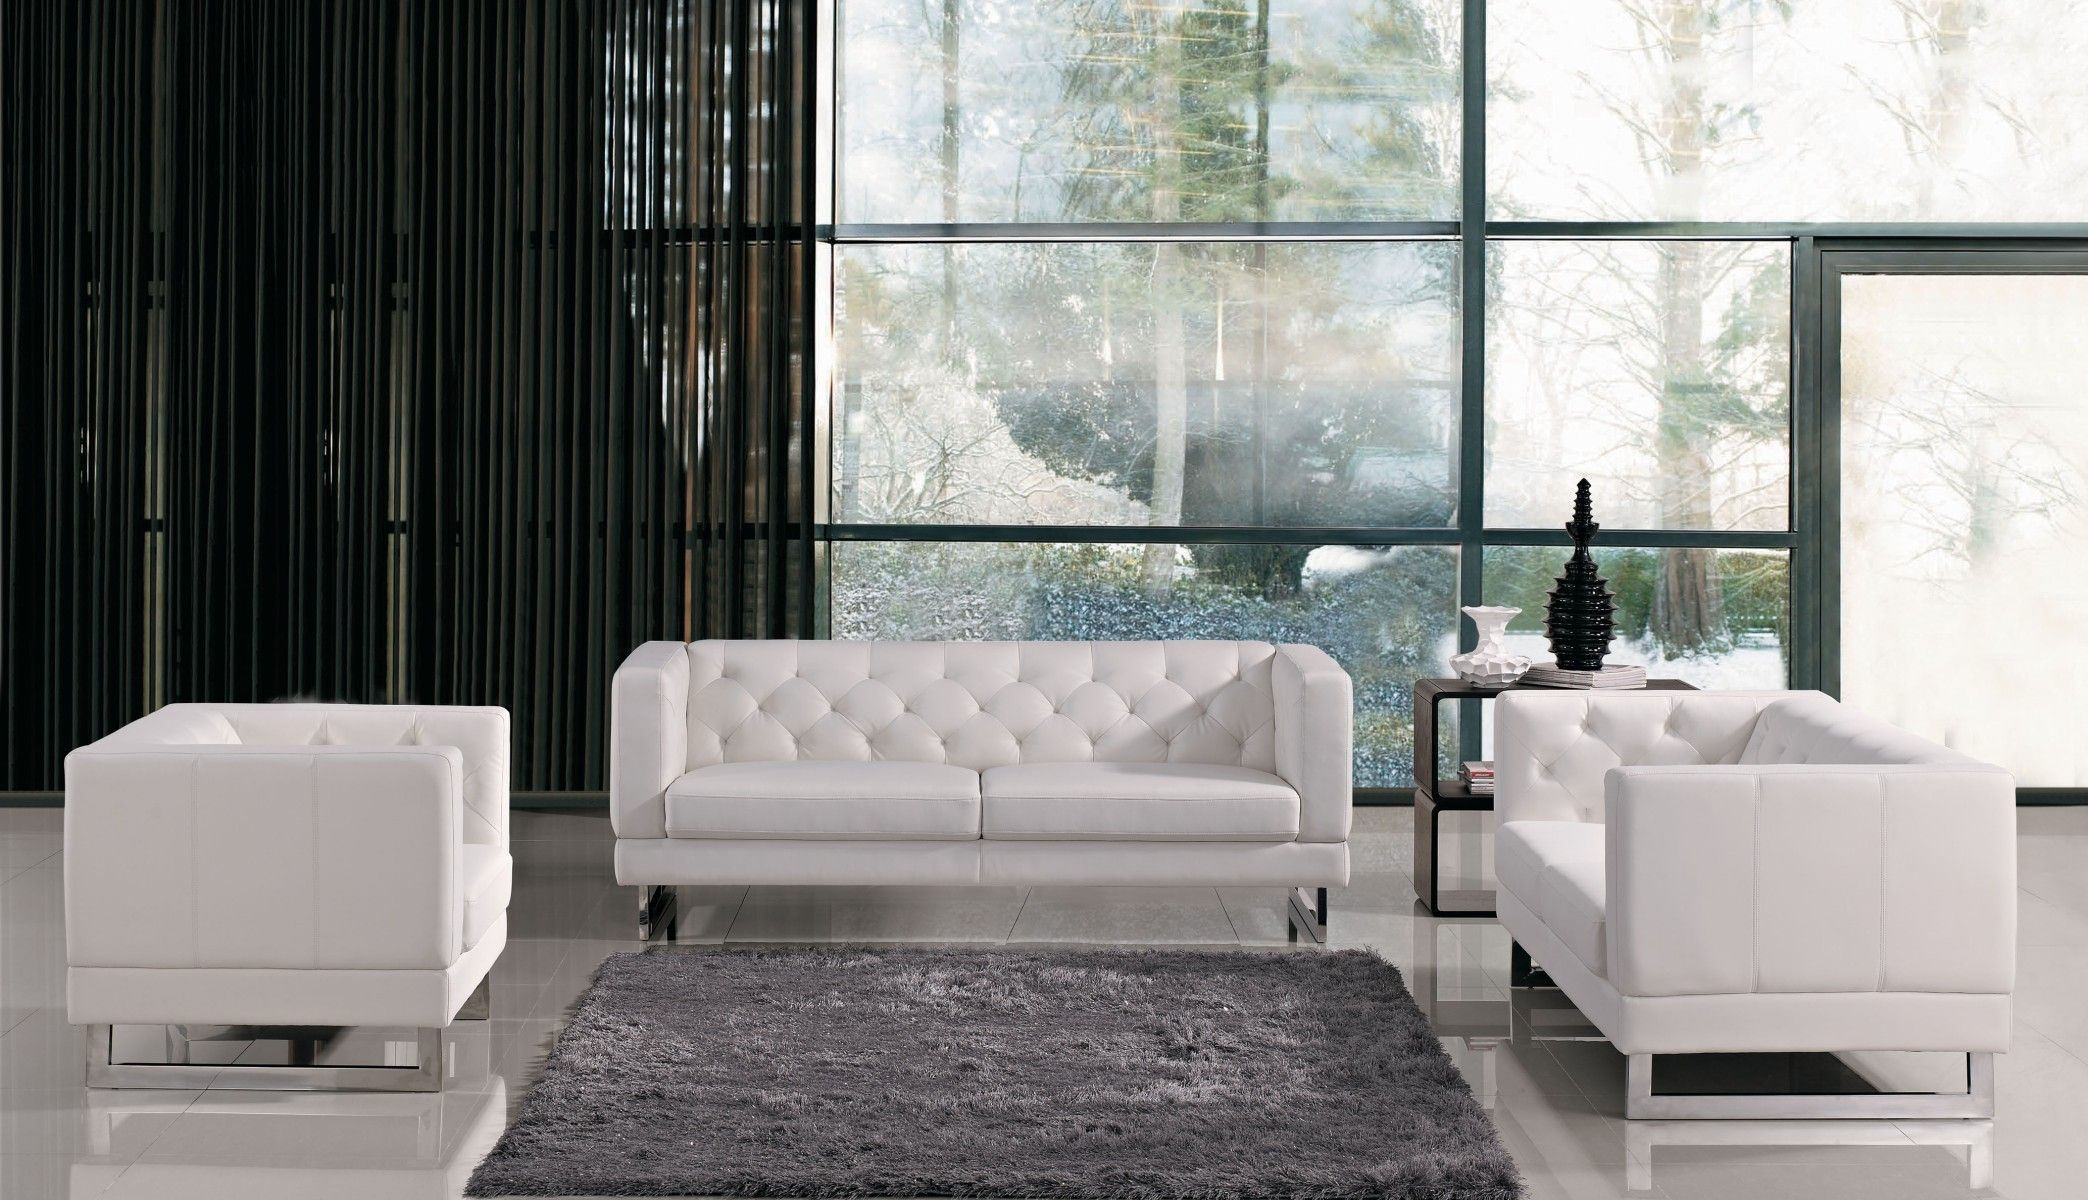 Windsor Italian Design Sofa Set Living Room Leather White Sofa Set White Leather Sofa Set